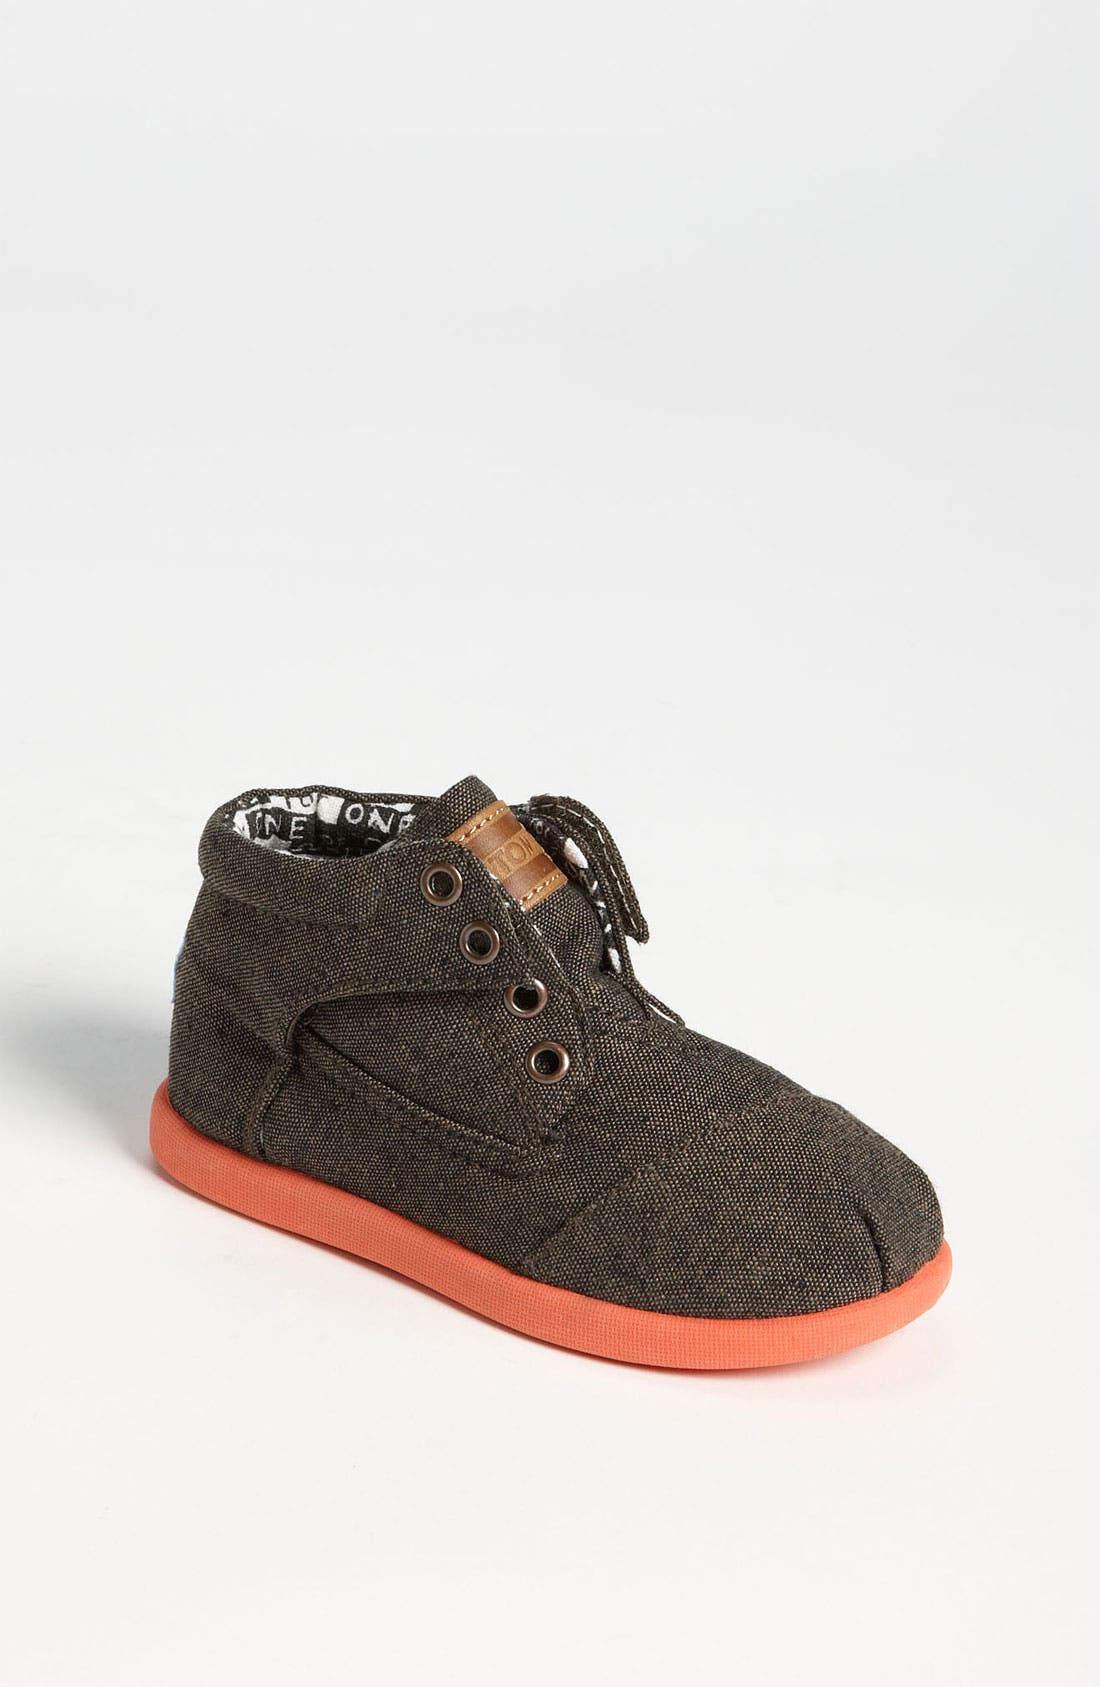 Alternate Image 1 Selected - TOMS 'Botas - Tiny' Chambray Boot (Baby, Walker & Toddler)